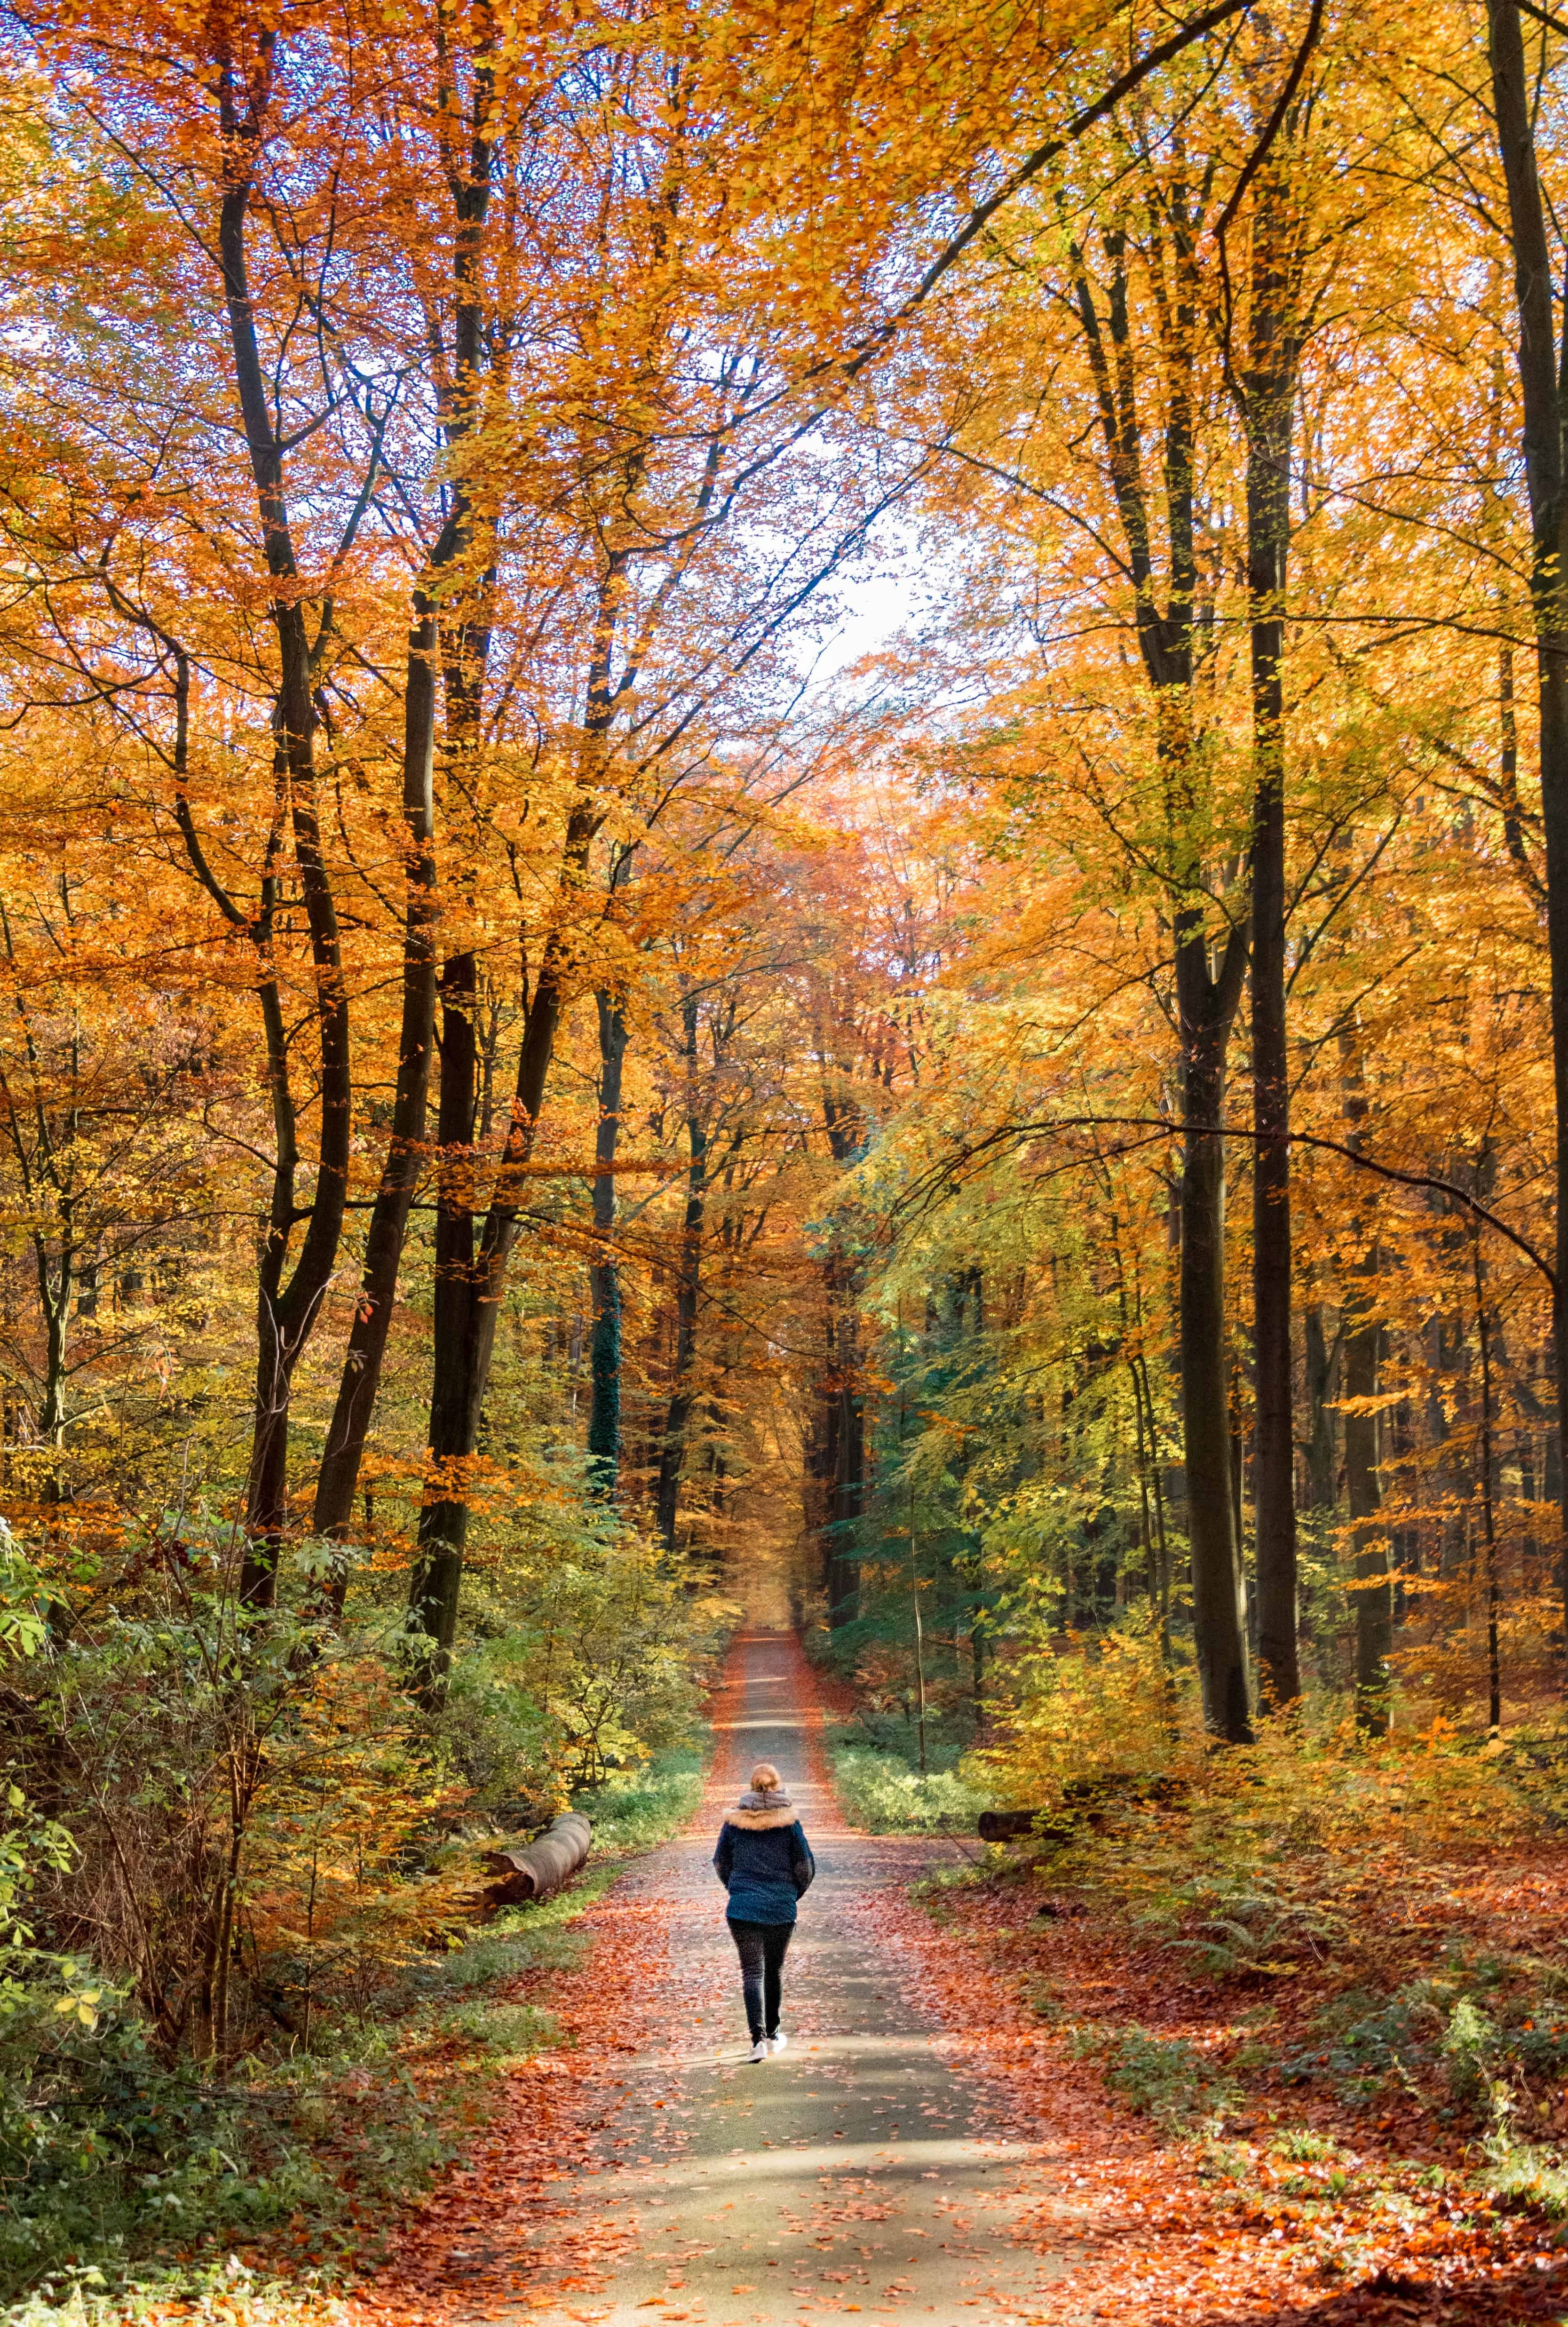 Solo female traveller admiring the fall leaves and the colours of the trees in a national park.